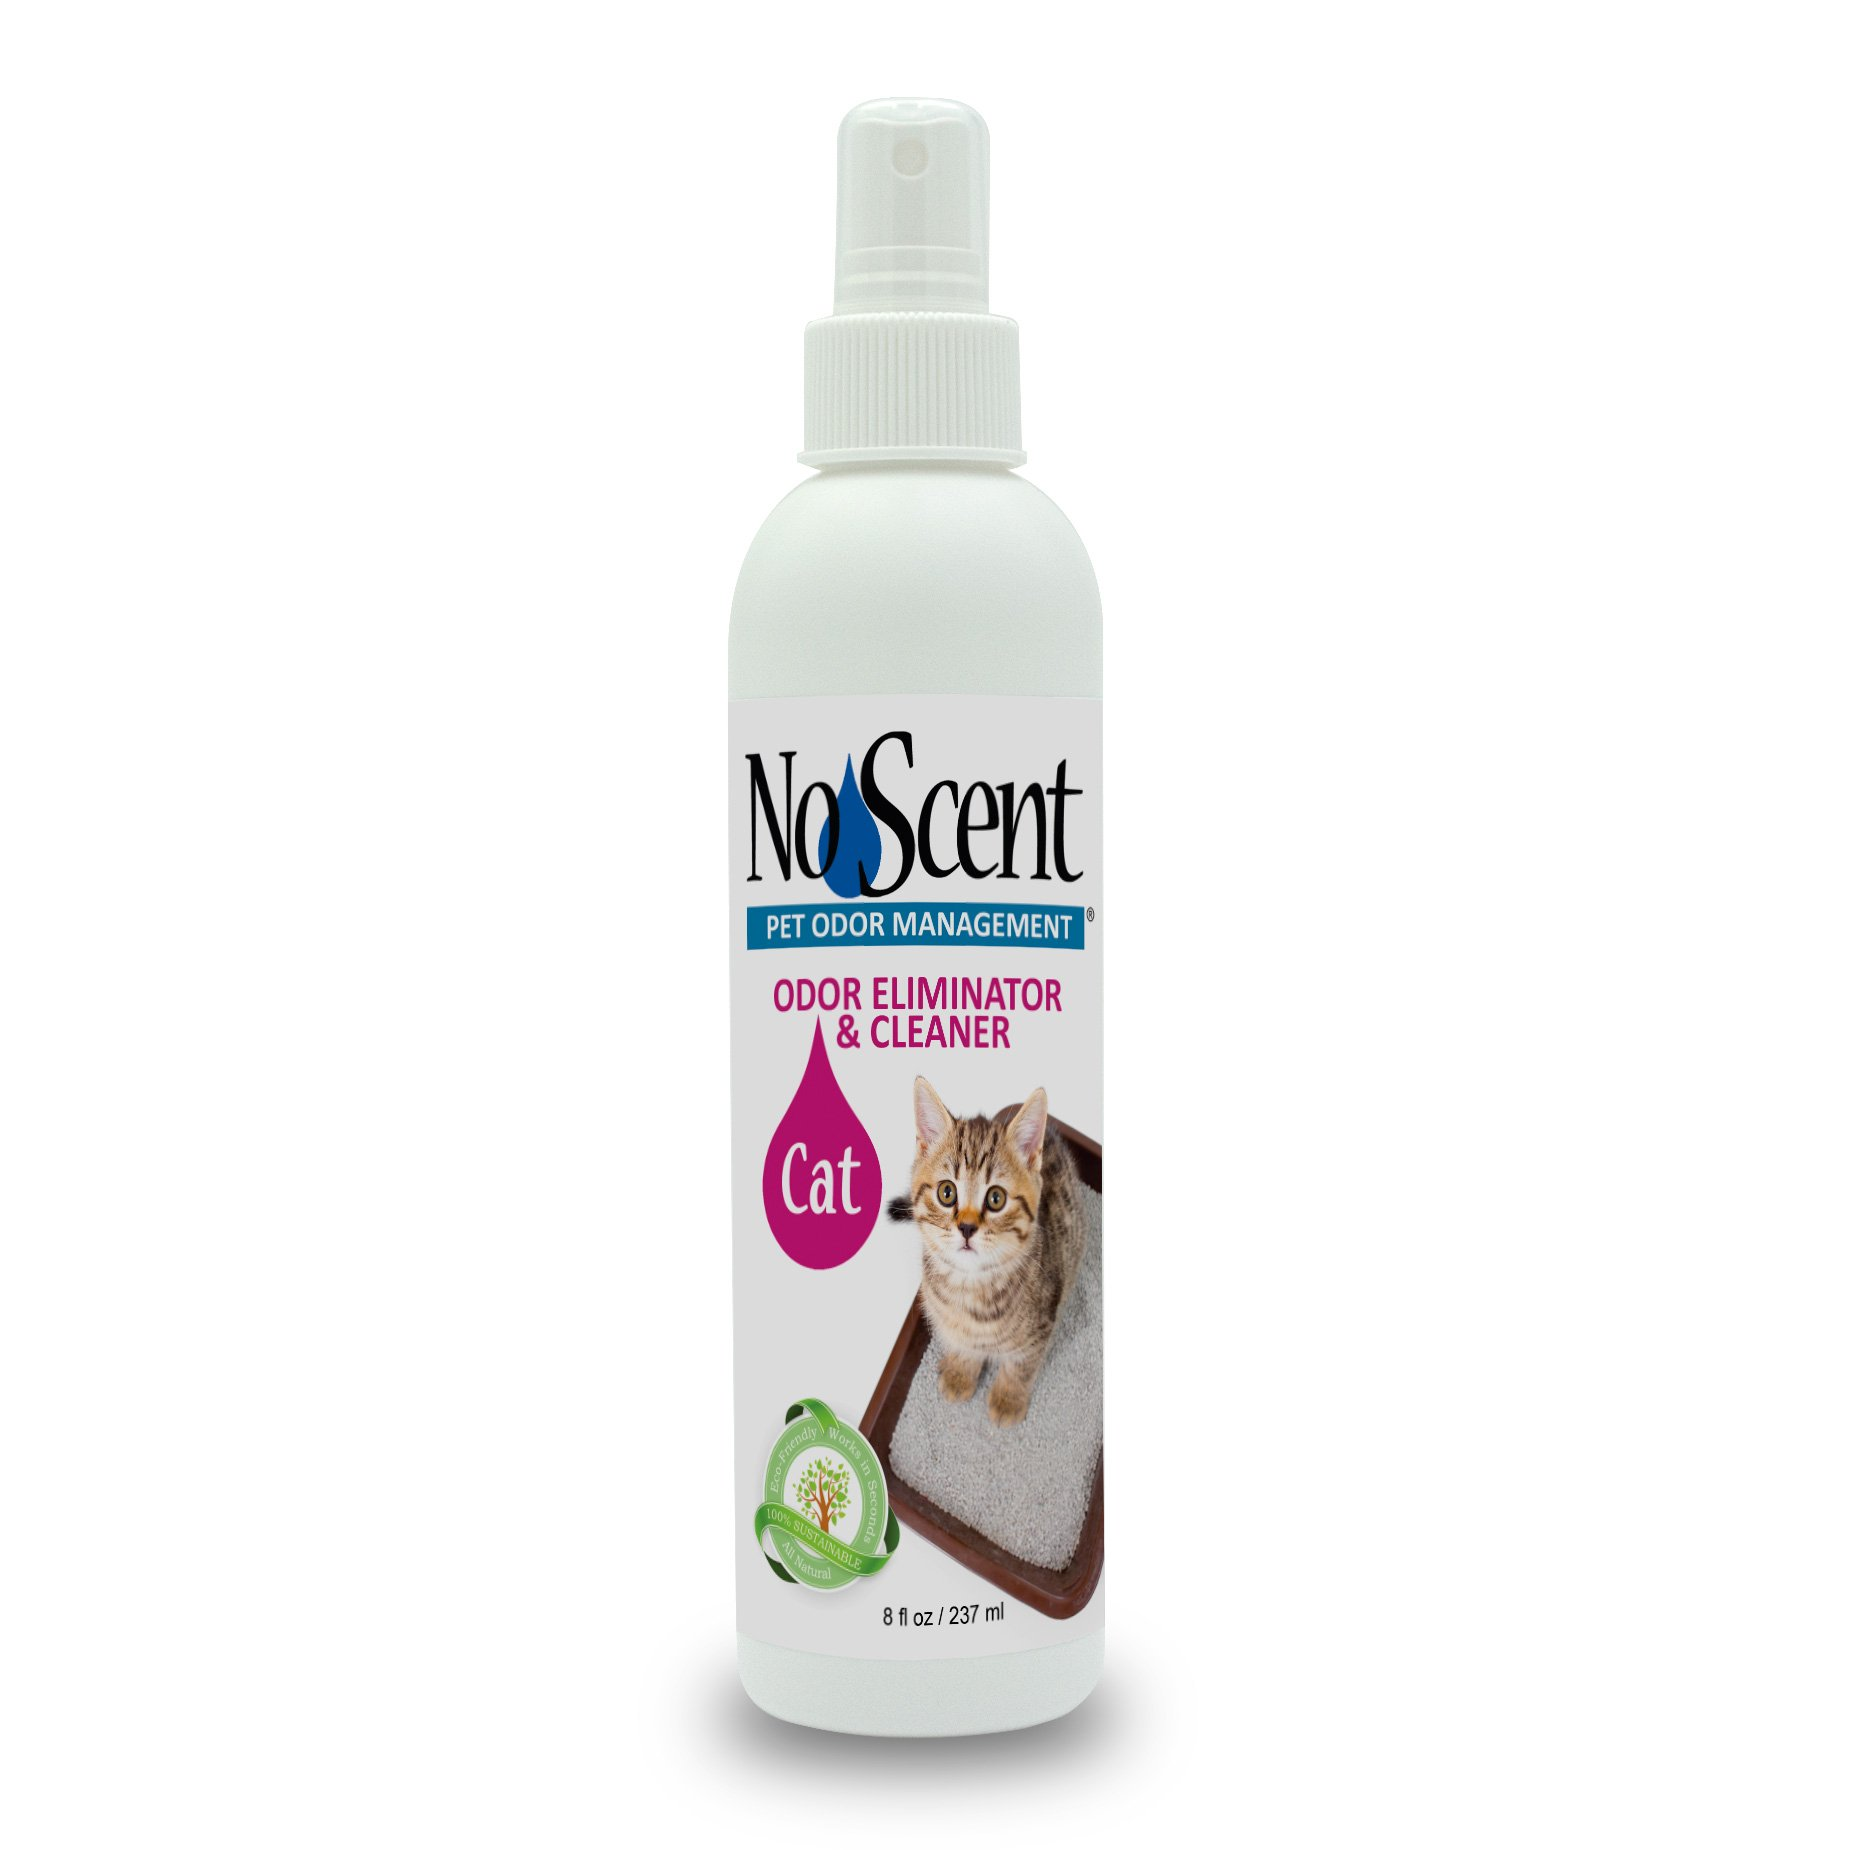 No Scent Cat - Professional Pet Urine Feces Odor Eliminator and Cleaner - Safe All Natural Probiotic & Enzyme Formula Smell Remover for Litter Box Hardwood Carpet Floors and Upholstery (8 oz)